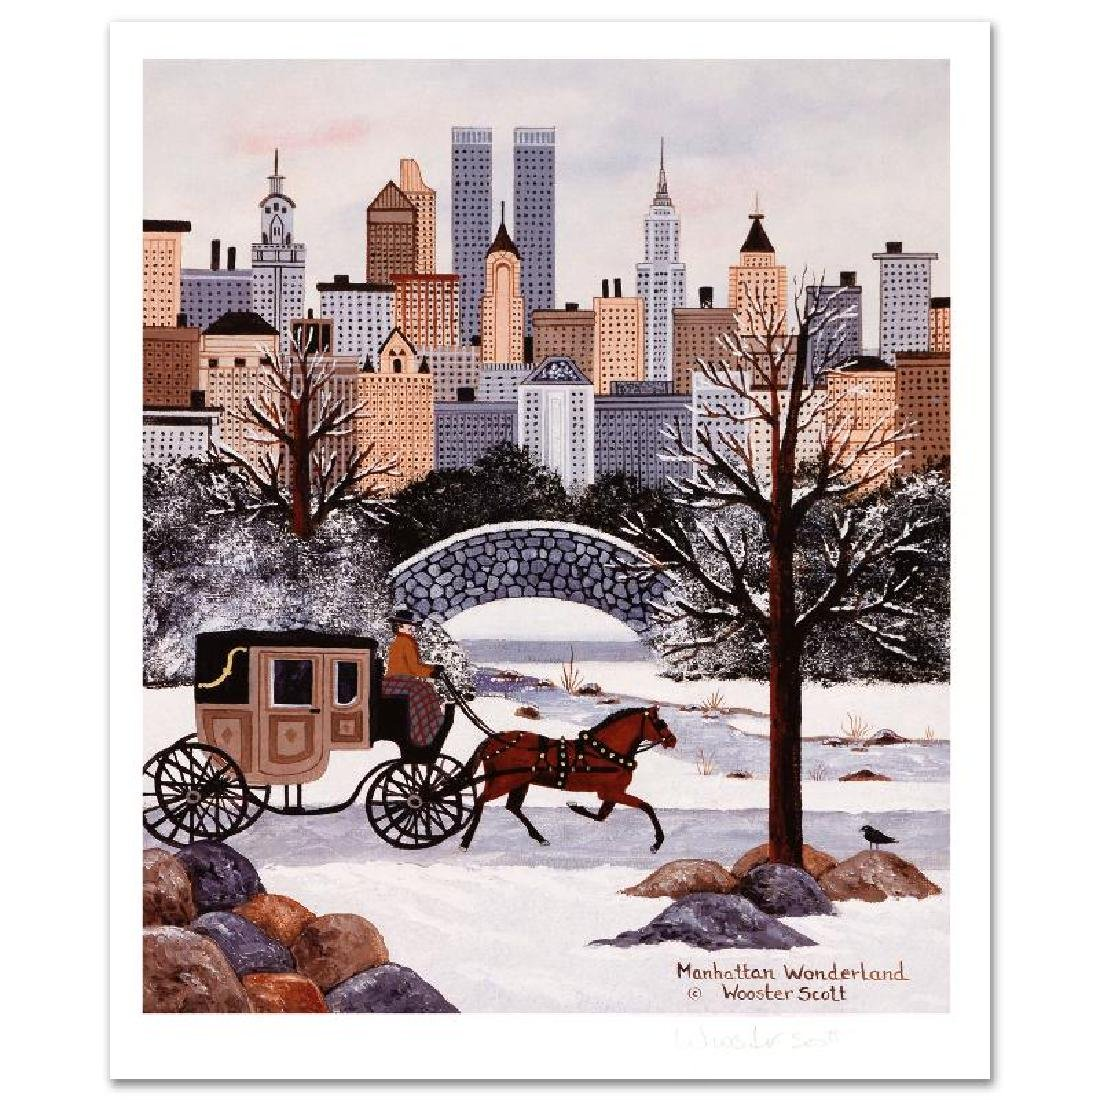 Manhattan Wonderland Limited Edition Lithograph by Jane